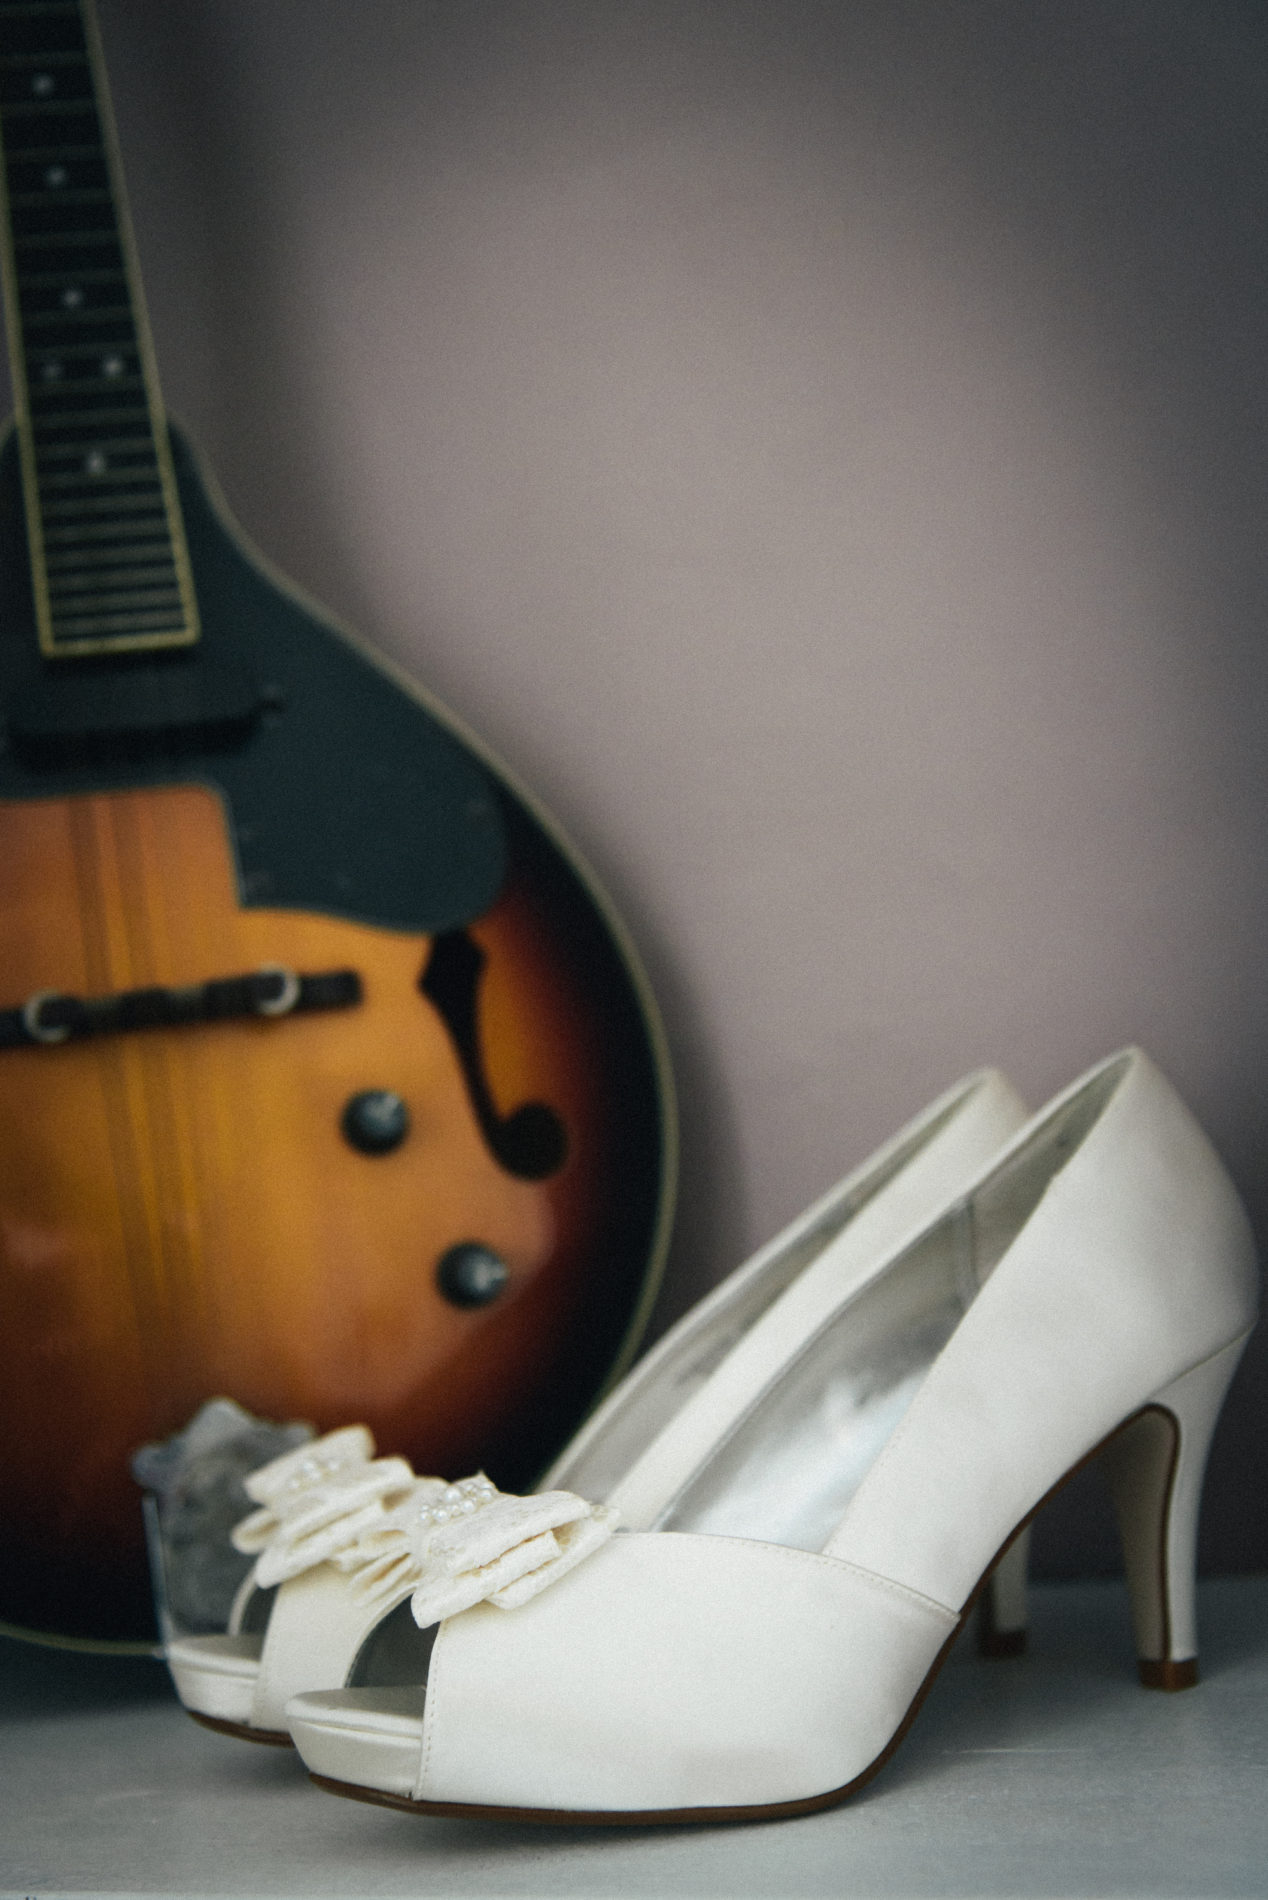 Ivory wedding shoes with a bow from Next